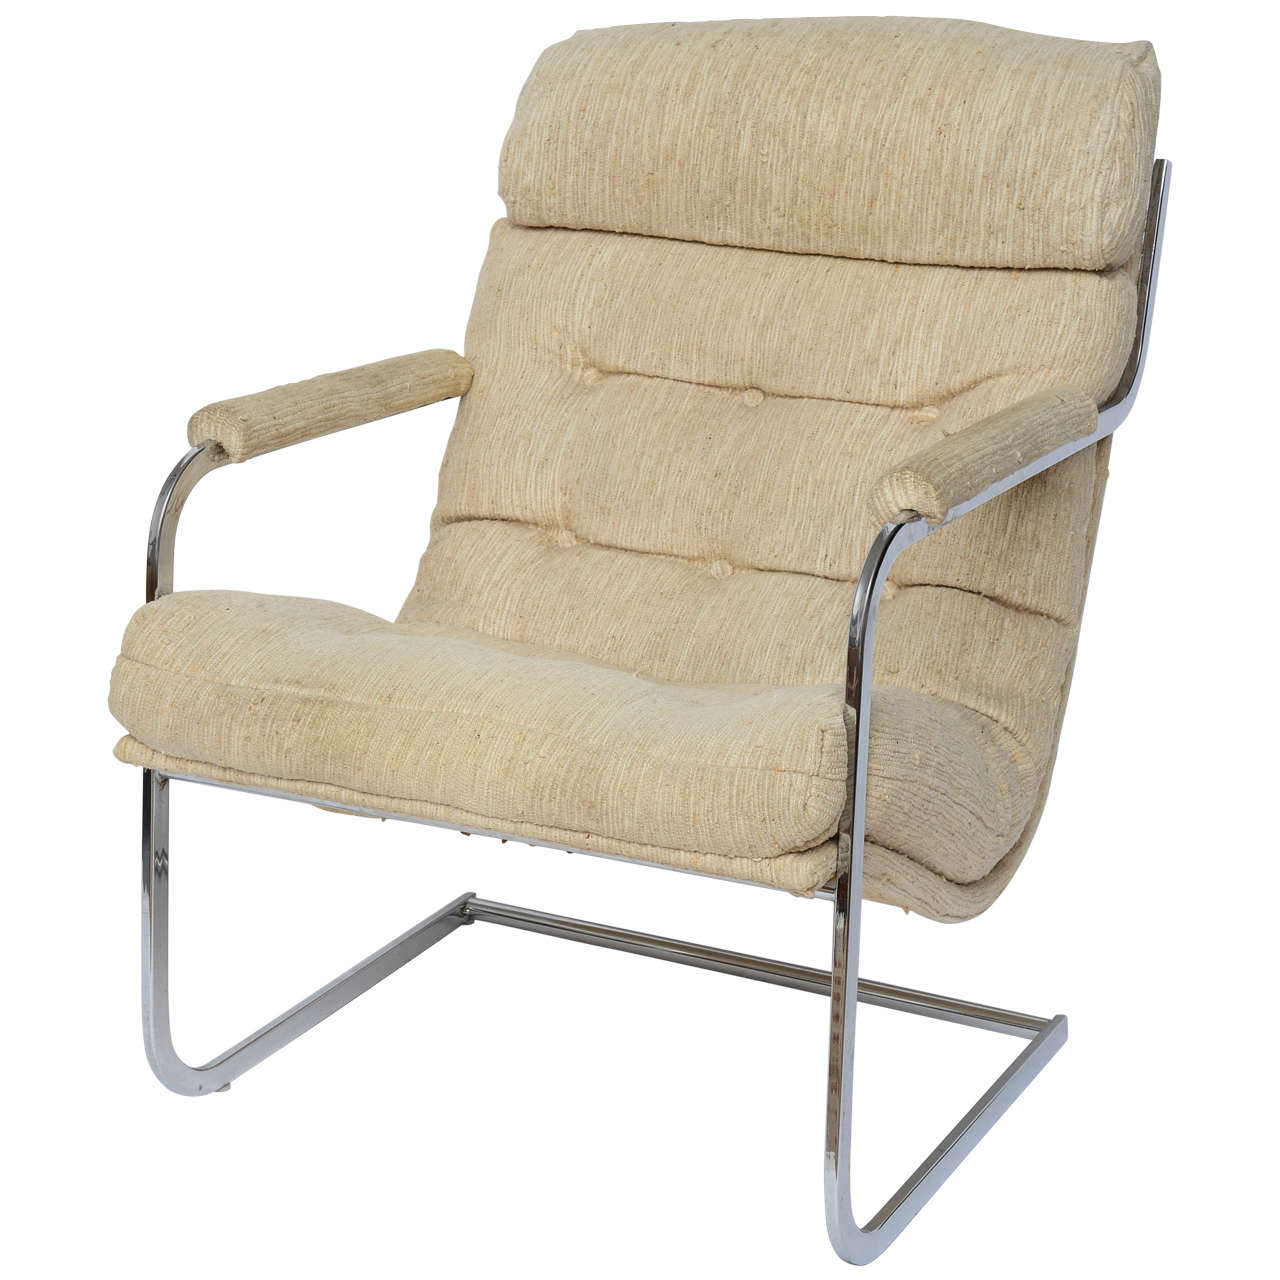 Oversized round swivel lounge chair mid century modern at 1stdibs - Mid Century Modern Lounge Chair And Ottoman Milo Baughman Style Cantilever Lounge Chair 1960s